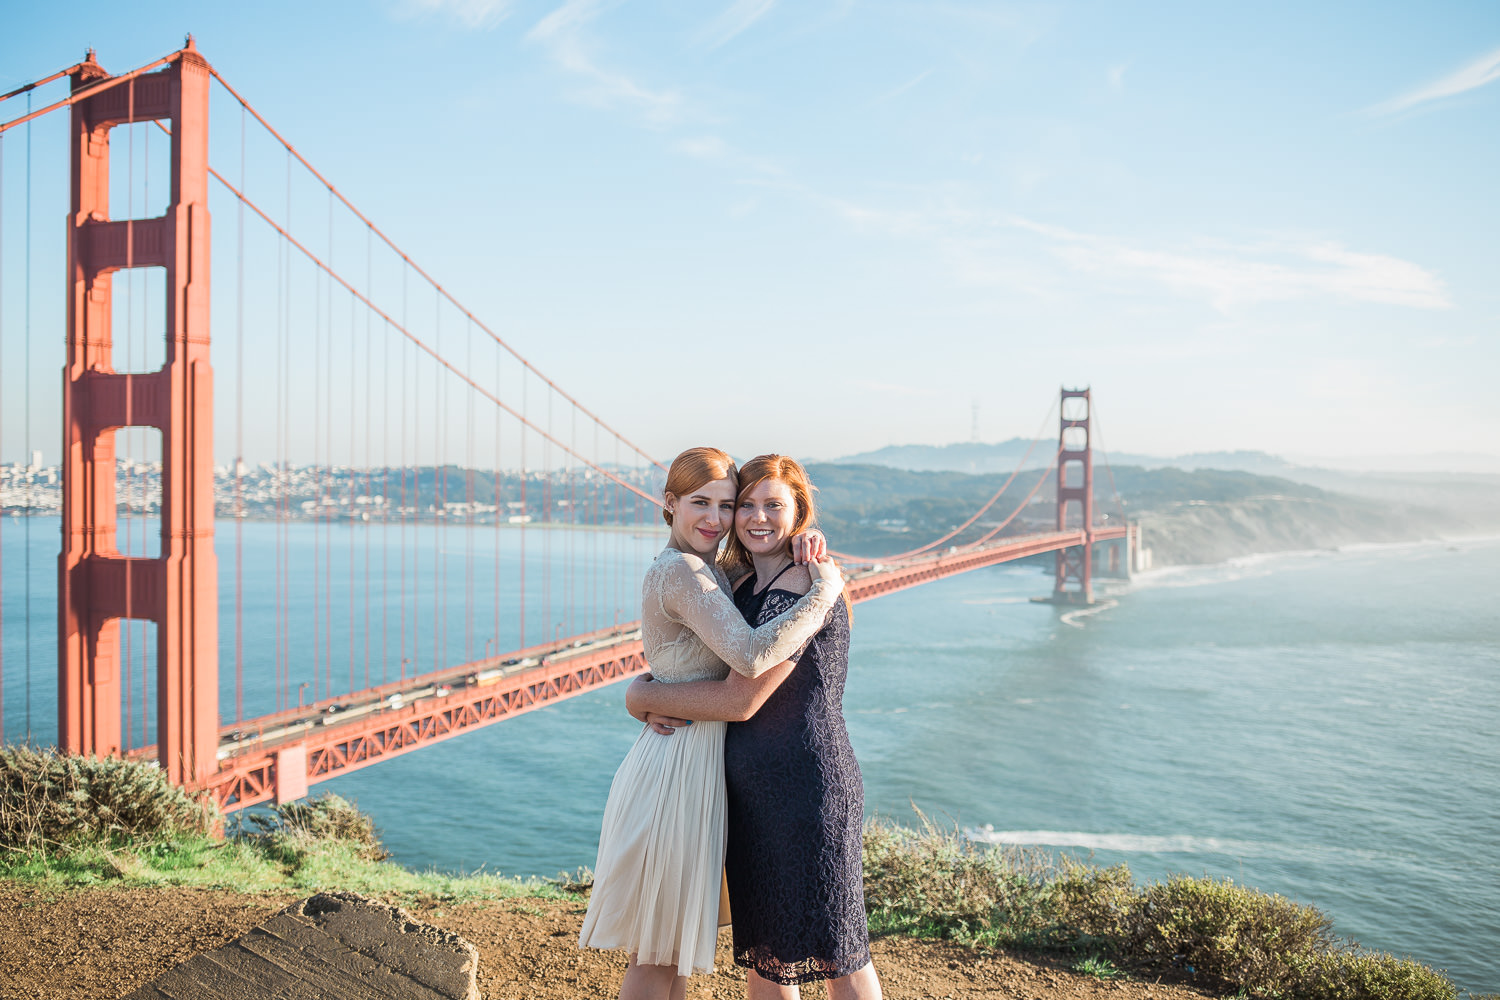 Parks and Recreation Golden Gate Bridge view bride and maid of honor portrait